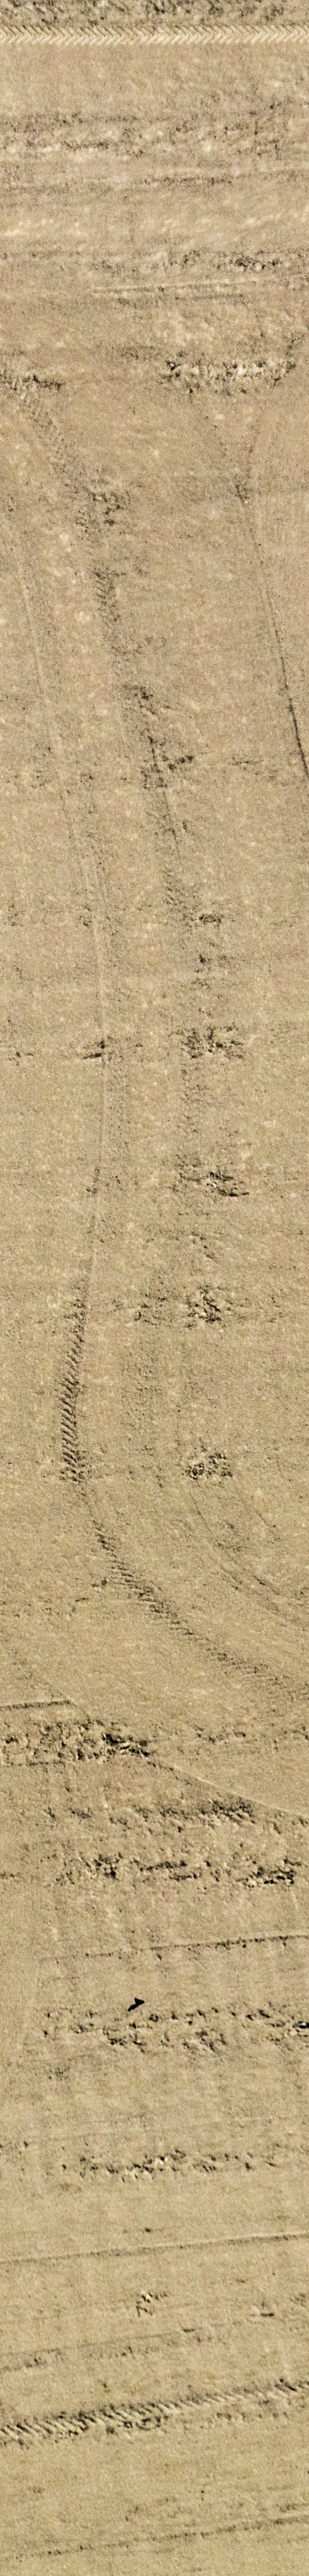 Aerial view of the traces of working the field - Klaus Leidorf Aerial Photography